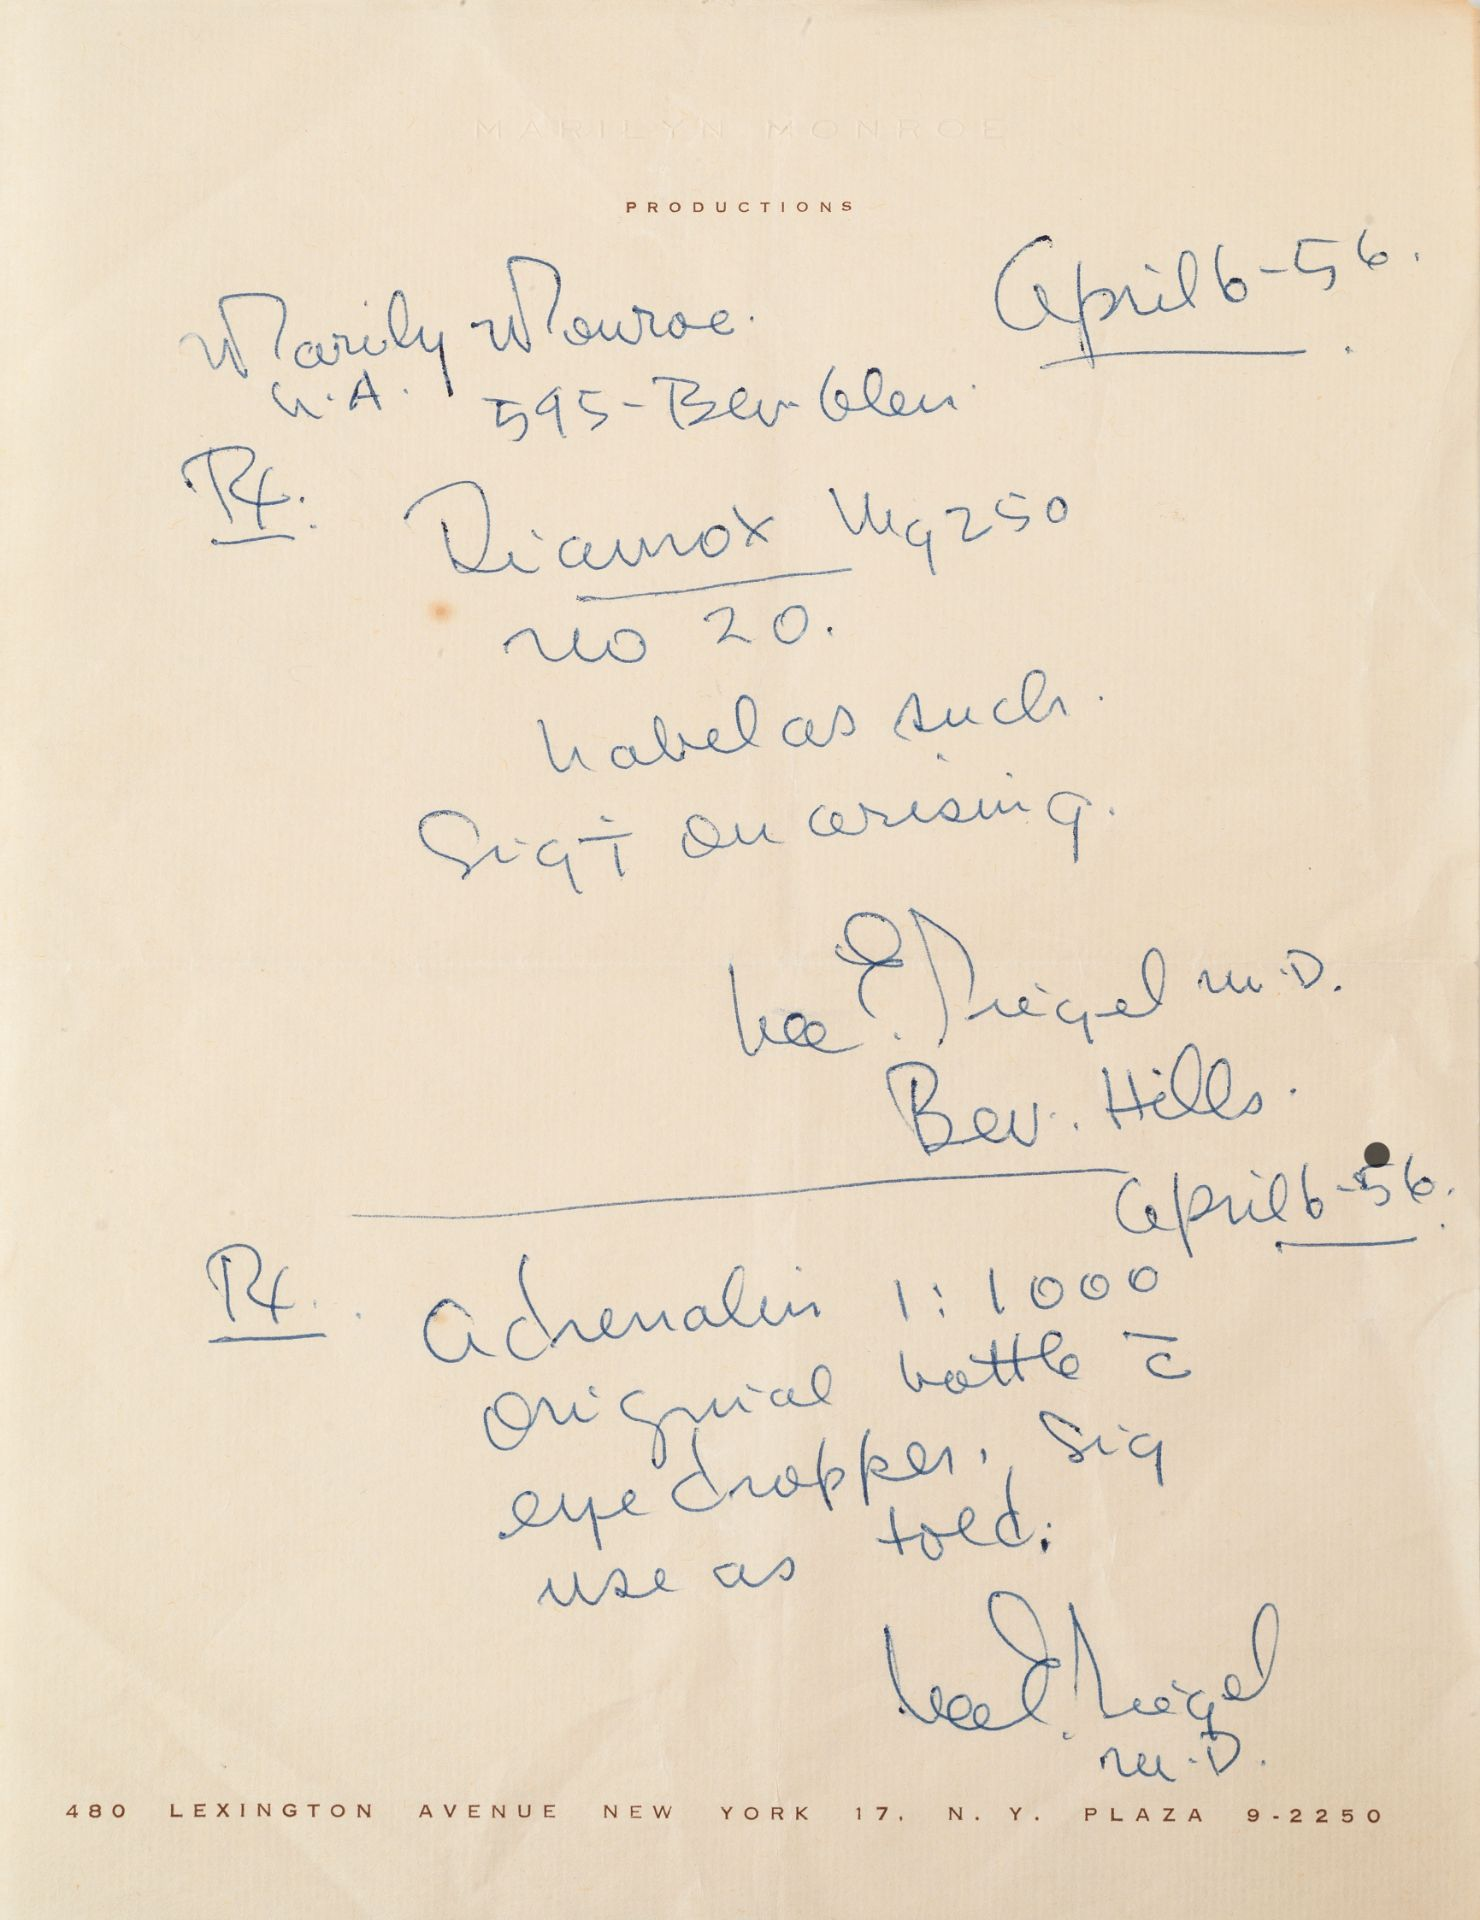 Marilyn Monroe: A prescription for Marilyn Monroe from Lee Seigel, dated 6th April 1956,